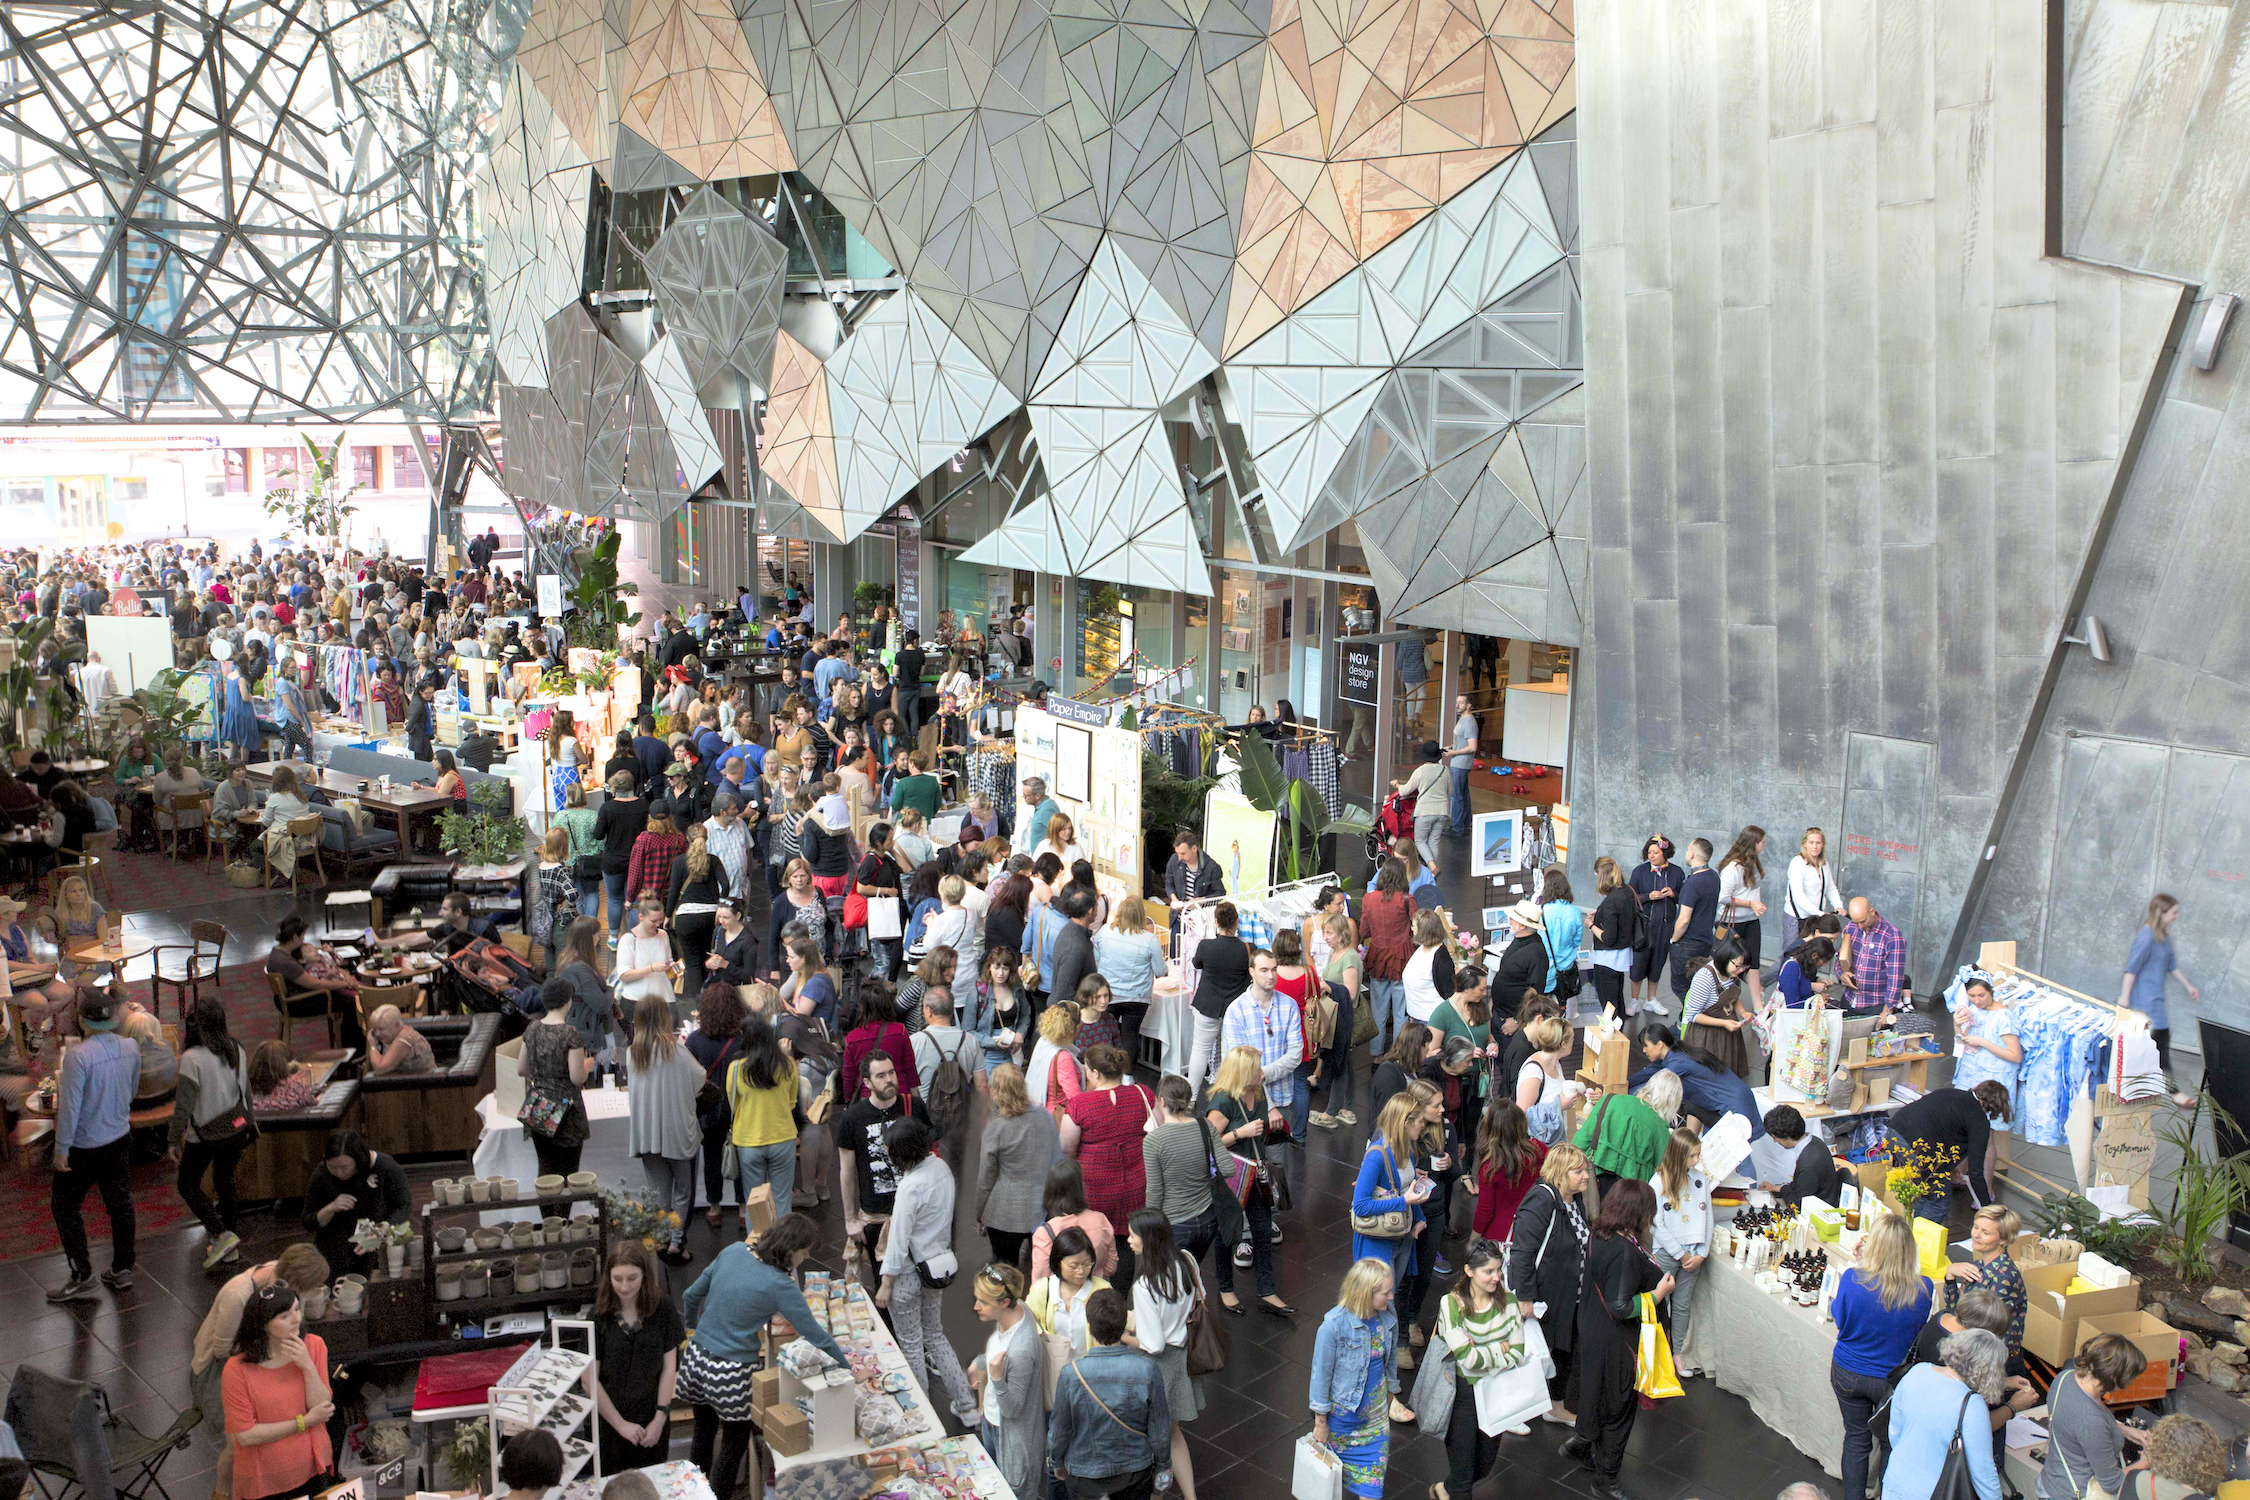 Things to do in Melbourne this weekend - What's on in Melbourne